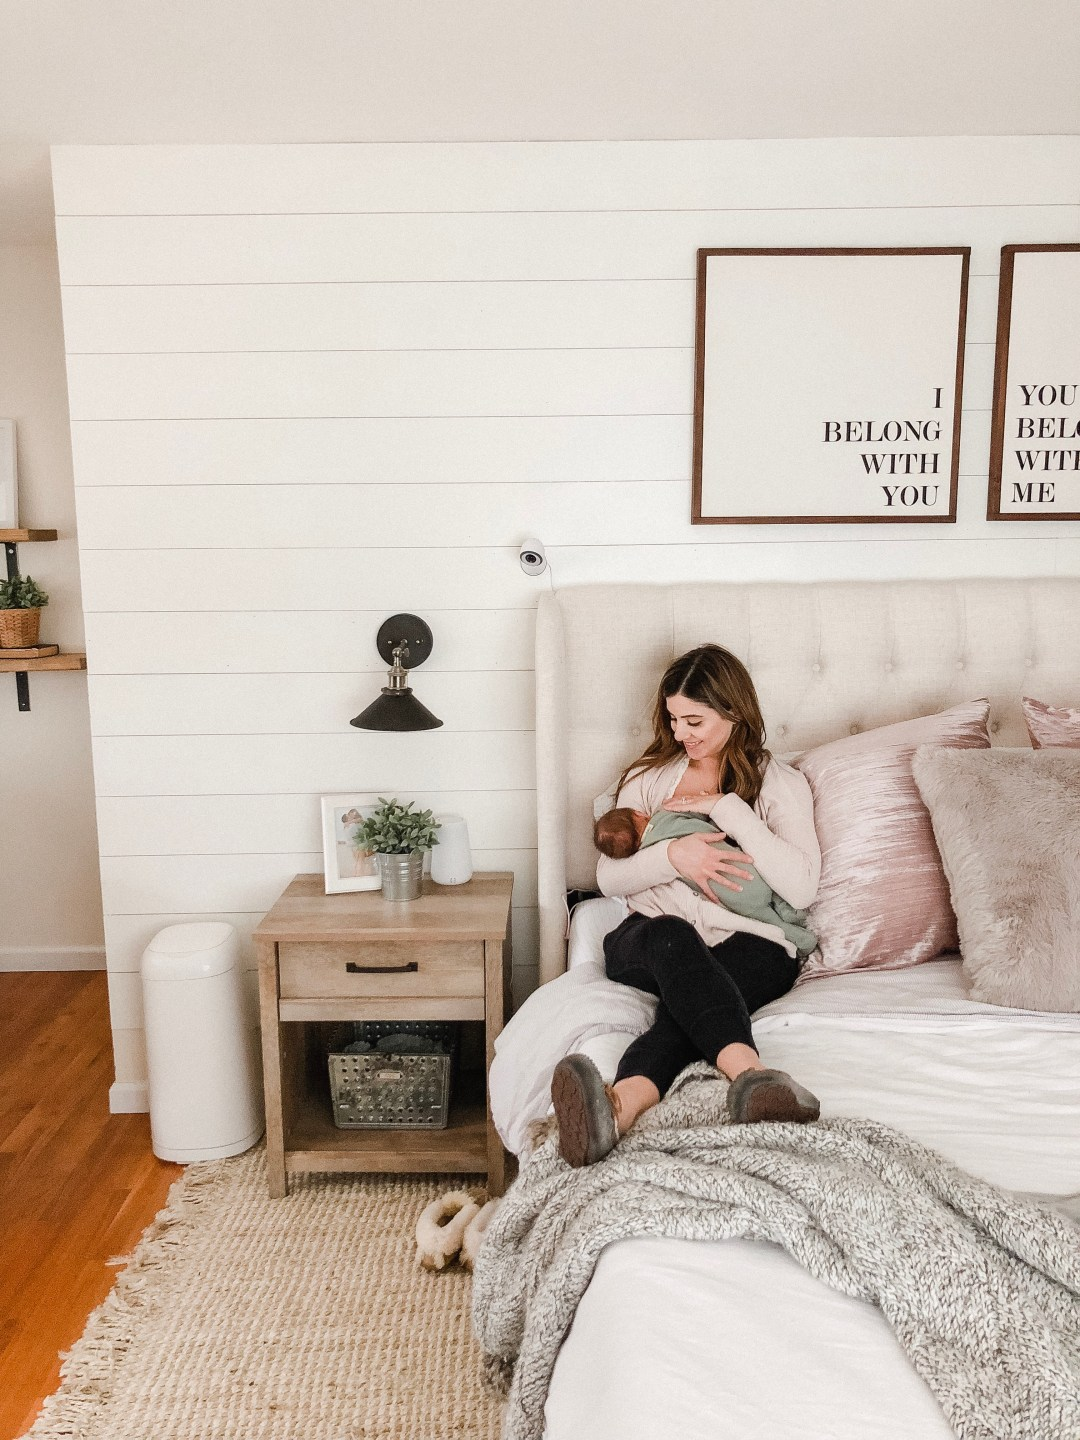 Life and style blogger Lauren McBride shares a roundup of products she tried in February 2018, including household and baby products.